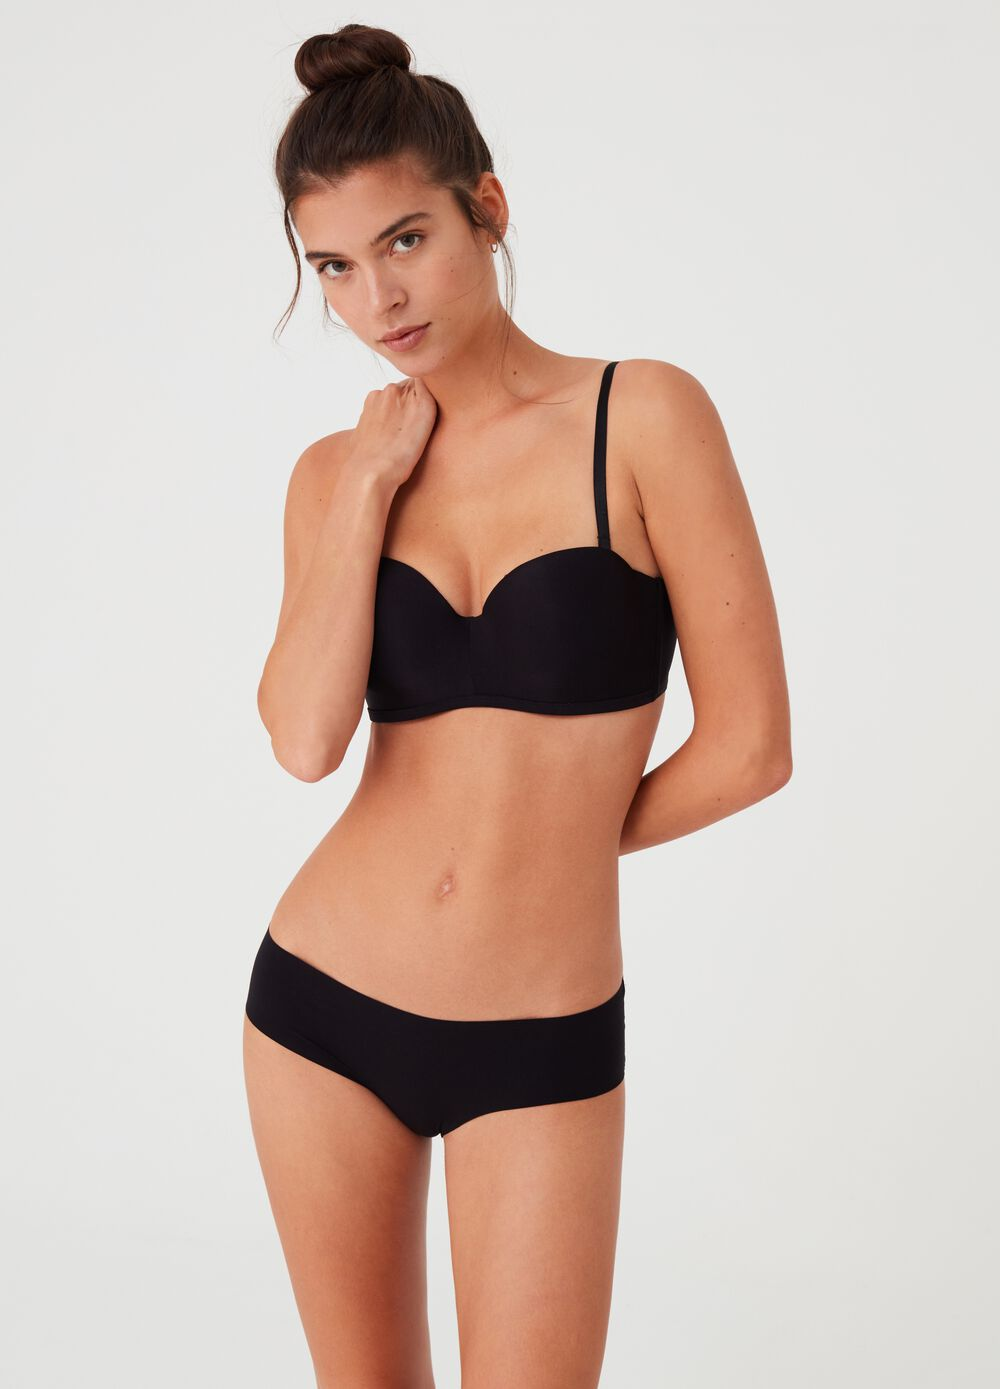 French hipster knickers invisible under clothing